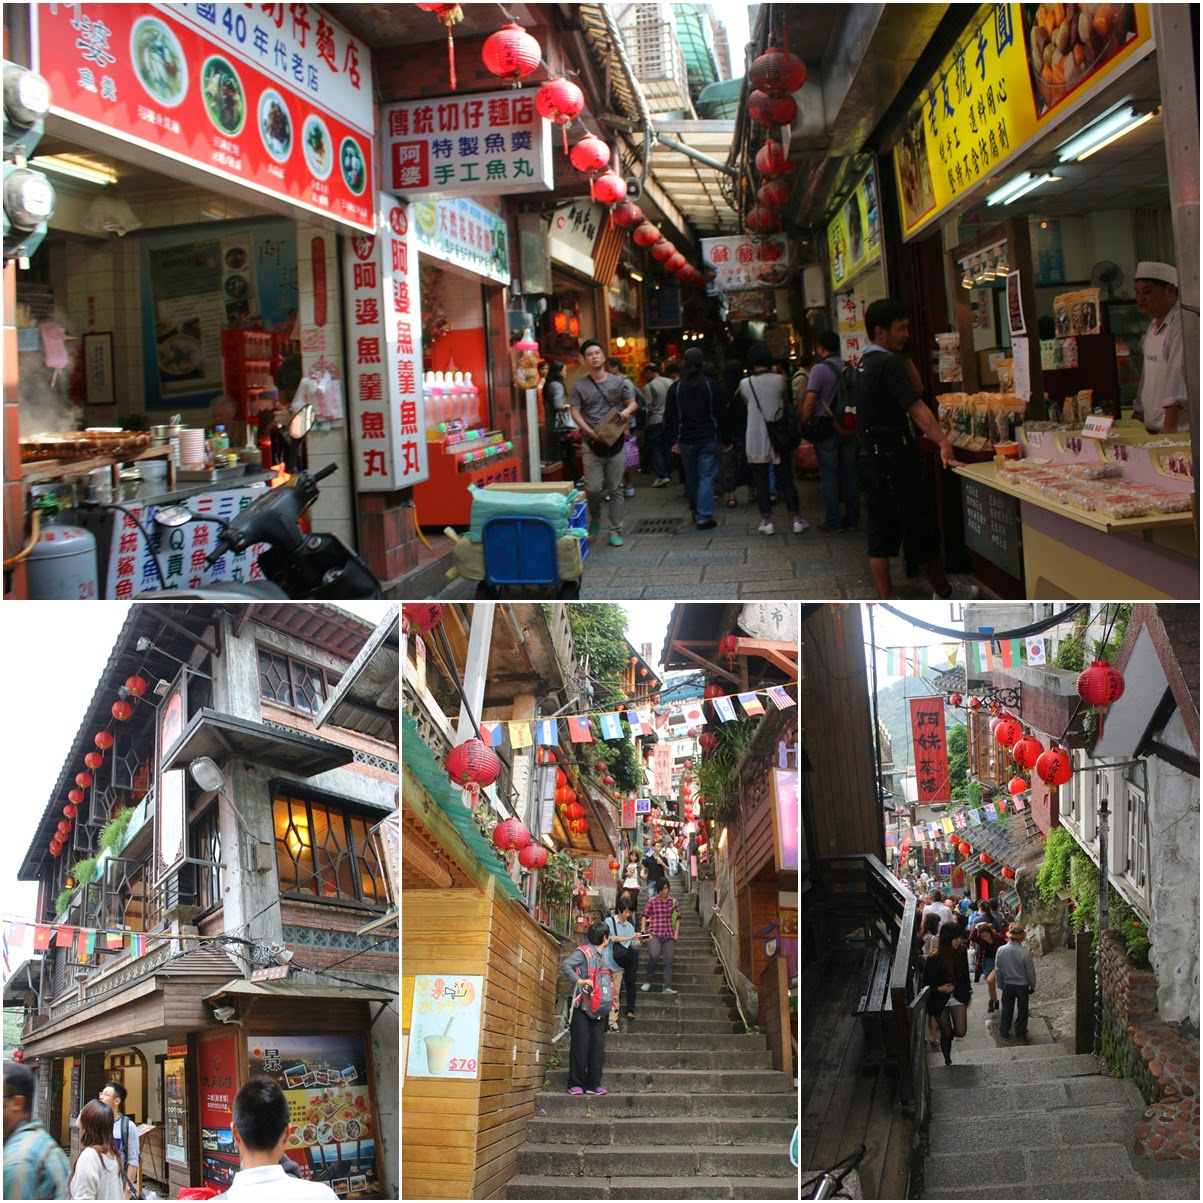 The unique architecture of Jiufen Old Street has become an inspiration for the Japanese animated film Spirited Away in Taiwan